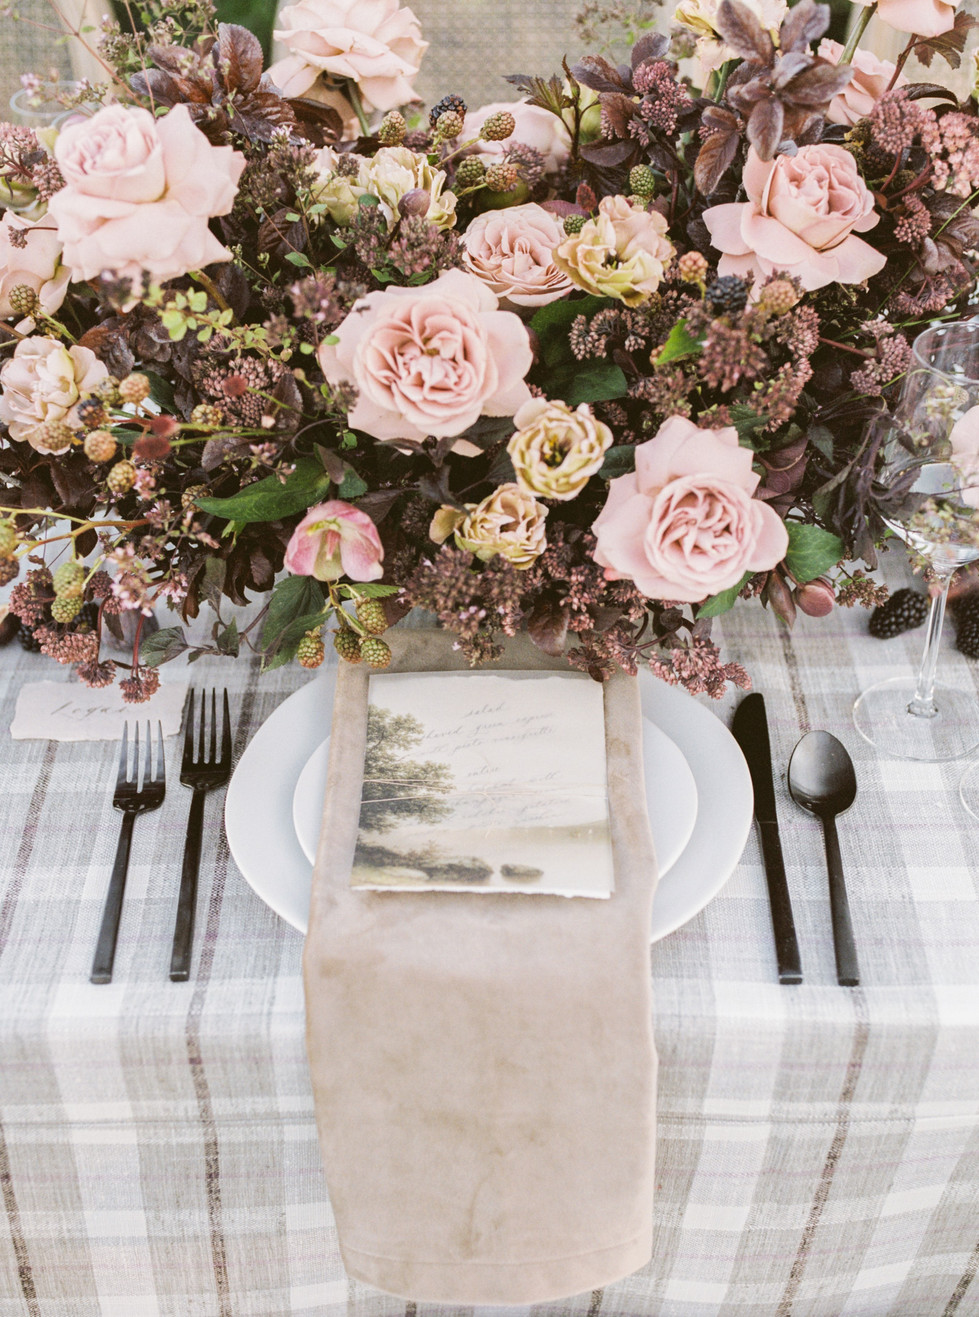 Centerpiece with Cappuccino roses, hellebore, lisianthus, black berries, and plum foliage. Photo: Lianna Marie